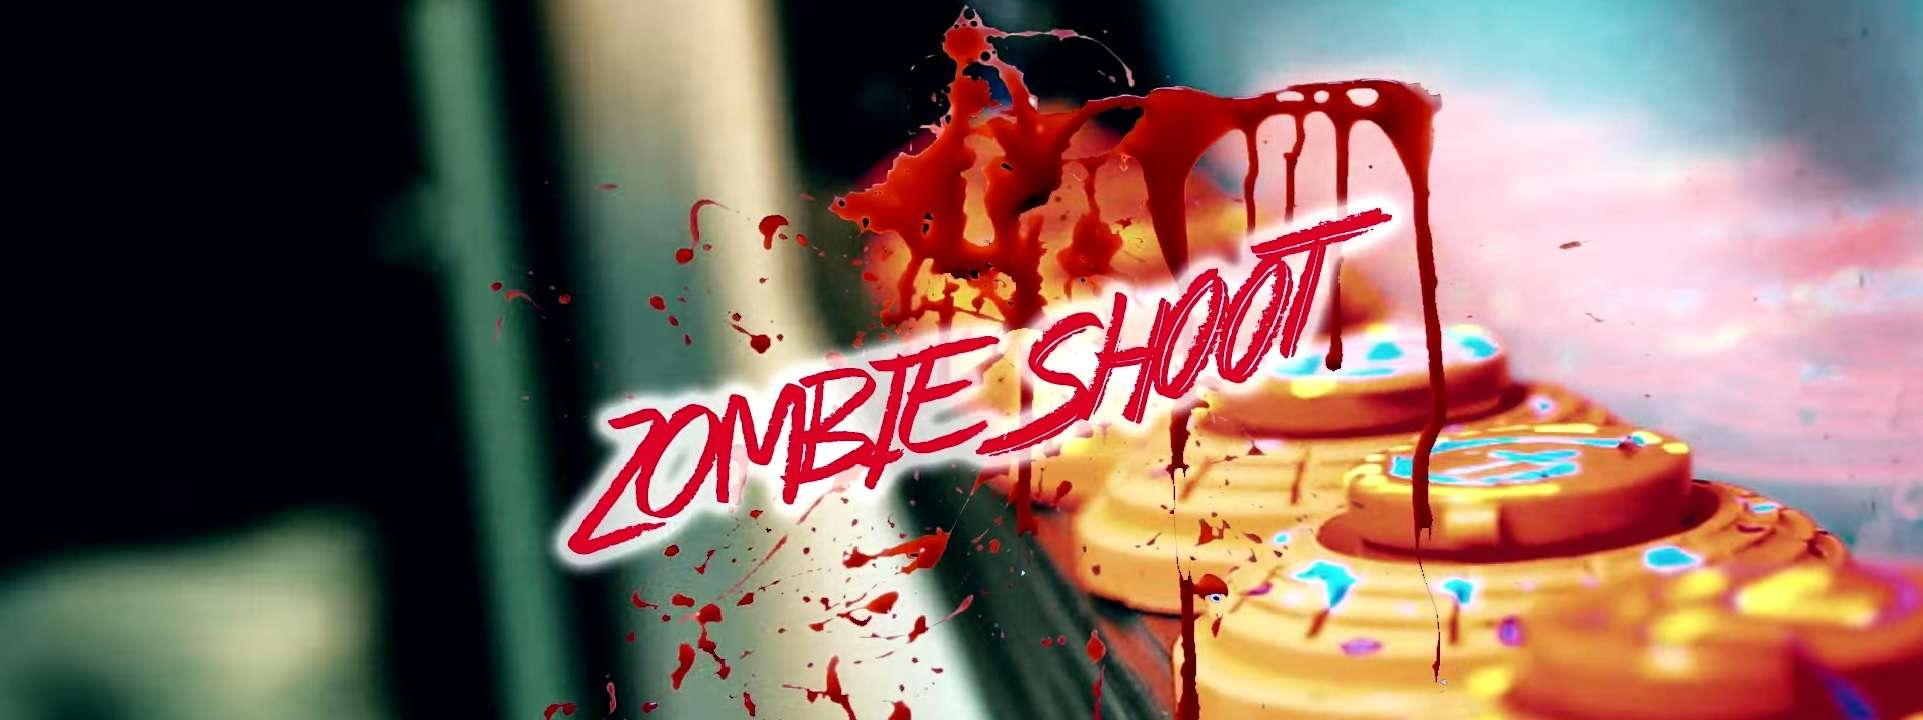 Philadelphia _Training_ Academy_ First_ Annual_ Zombie_ Shoot _2014_embodied_creative_digital_agency_philadelphia_south_jersey_small_business_web_design_photograph_consultation_ graphic_design_social_media_video_visual_branding_best_in_tri_state_area_discounts